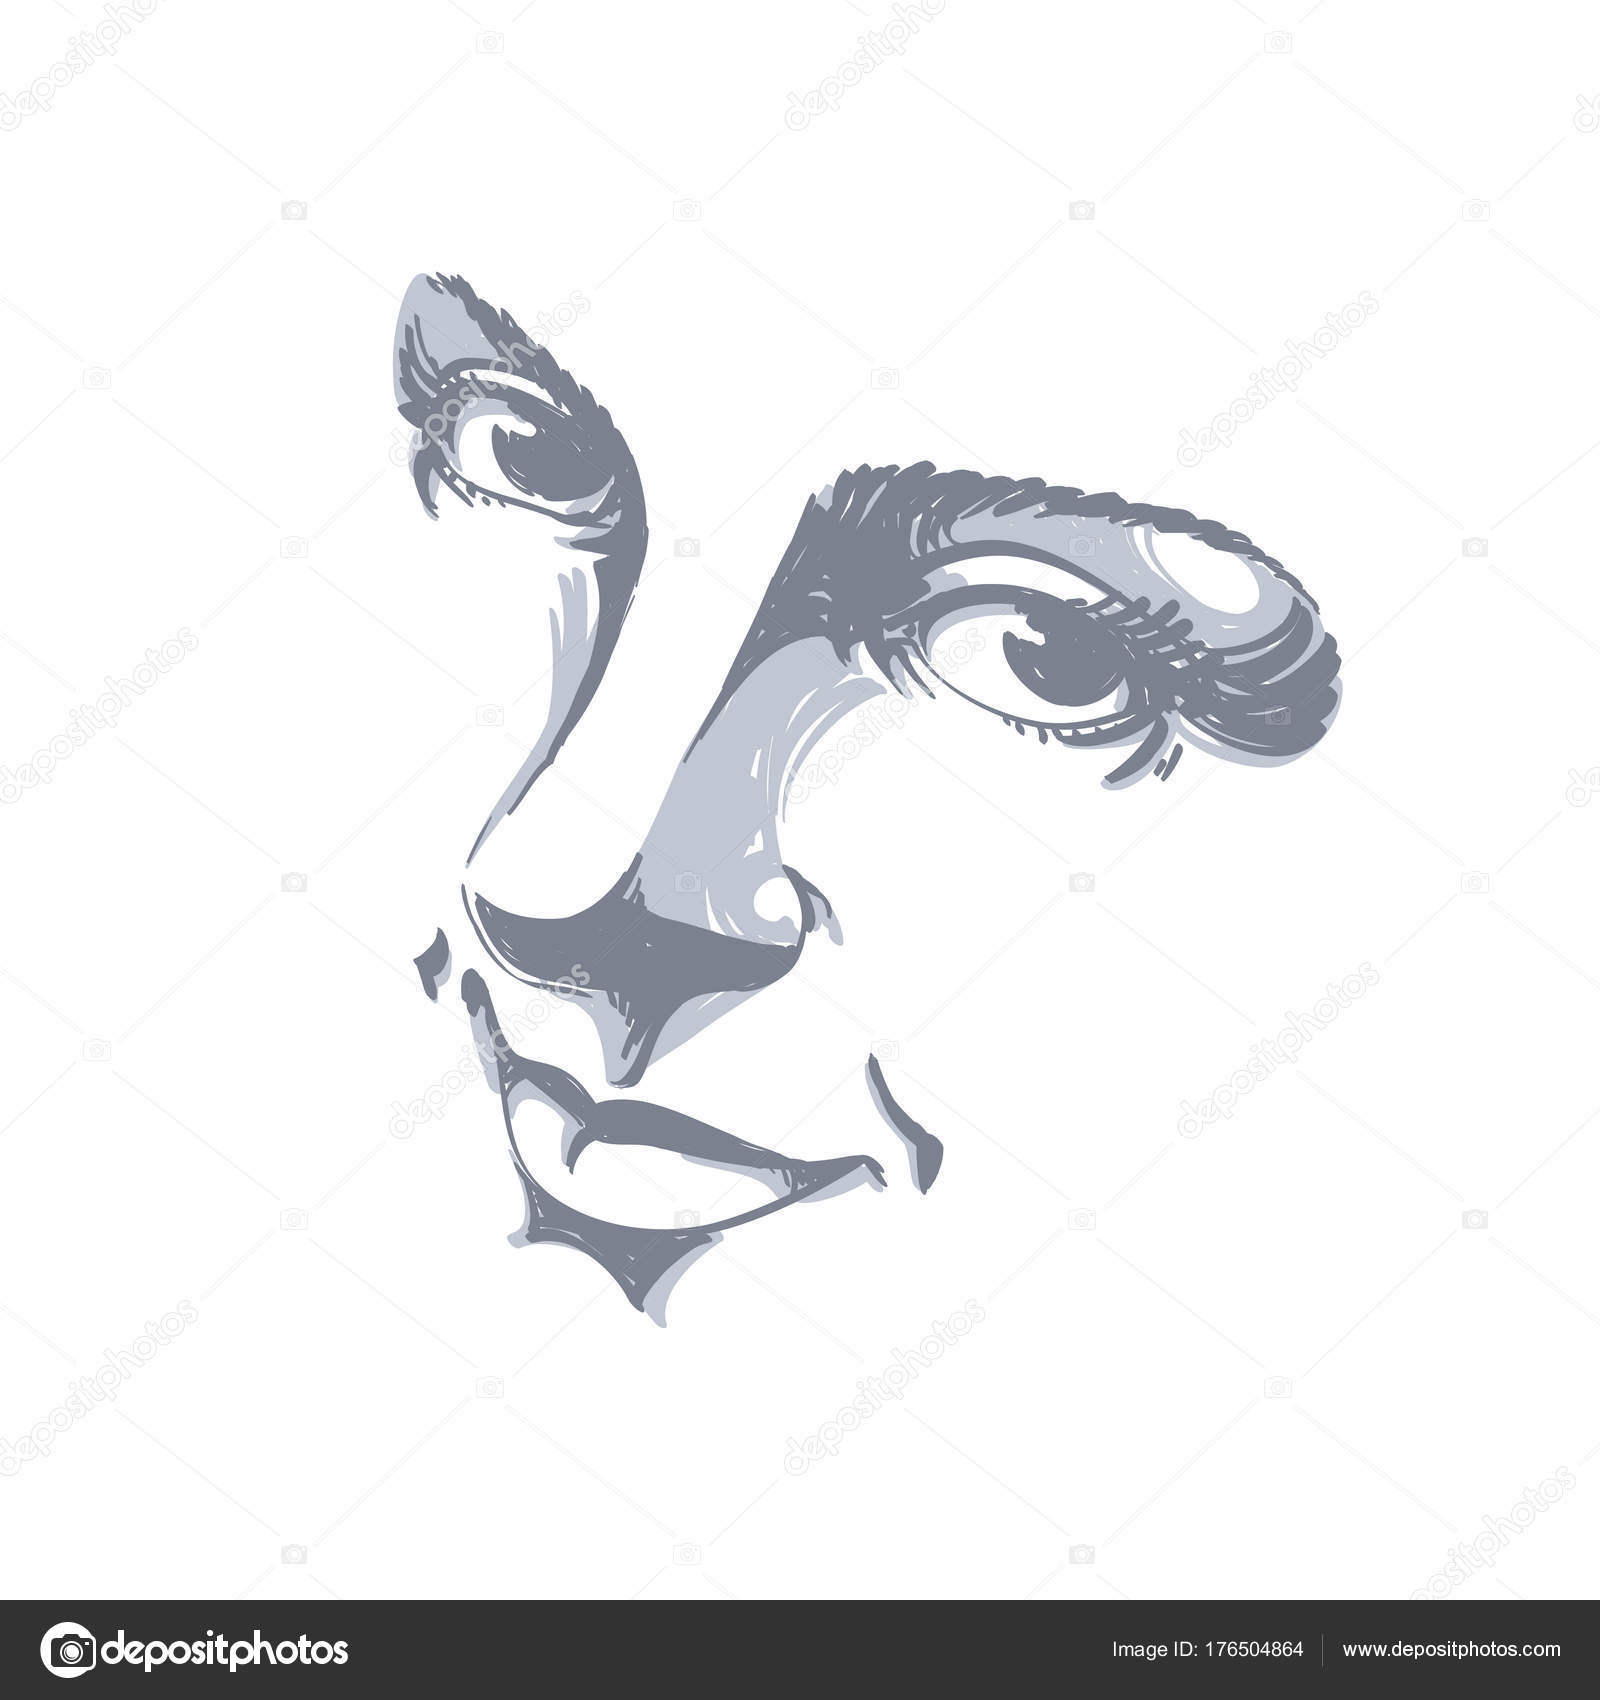 Illustration Visage monochrome silhouette smiling attractive lady face features hand